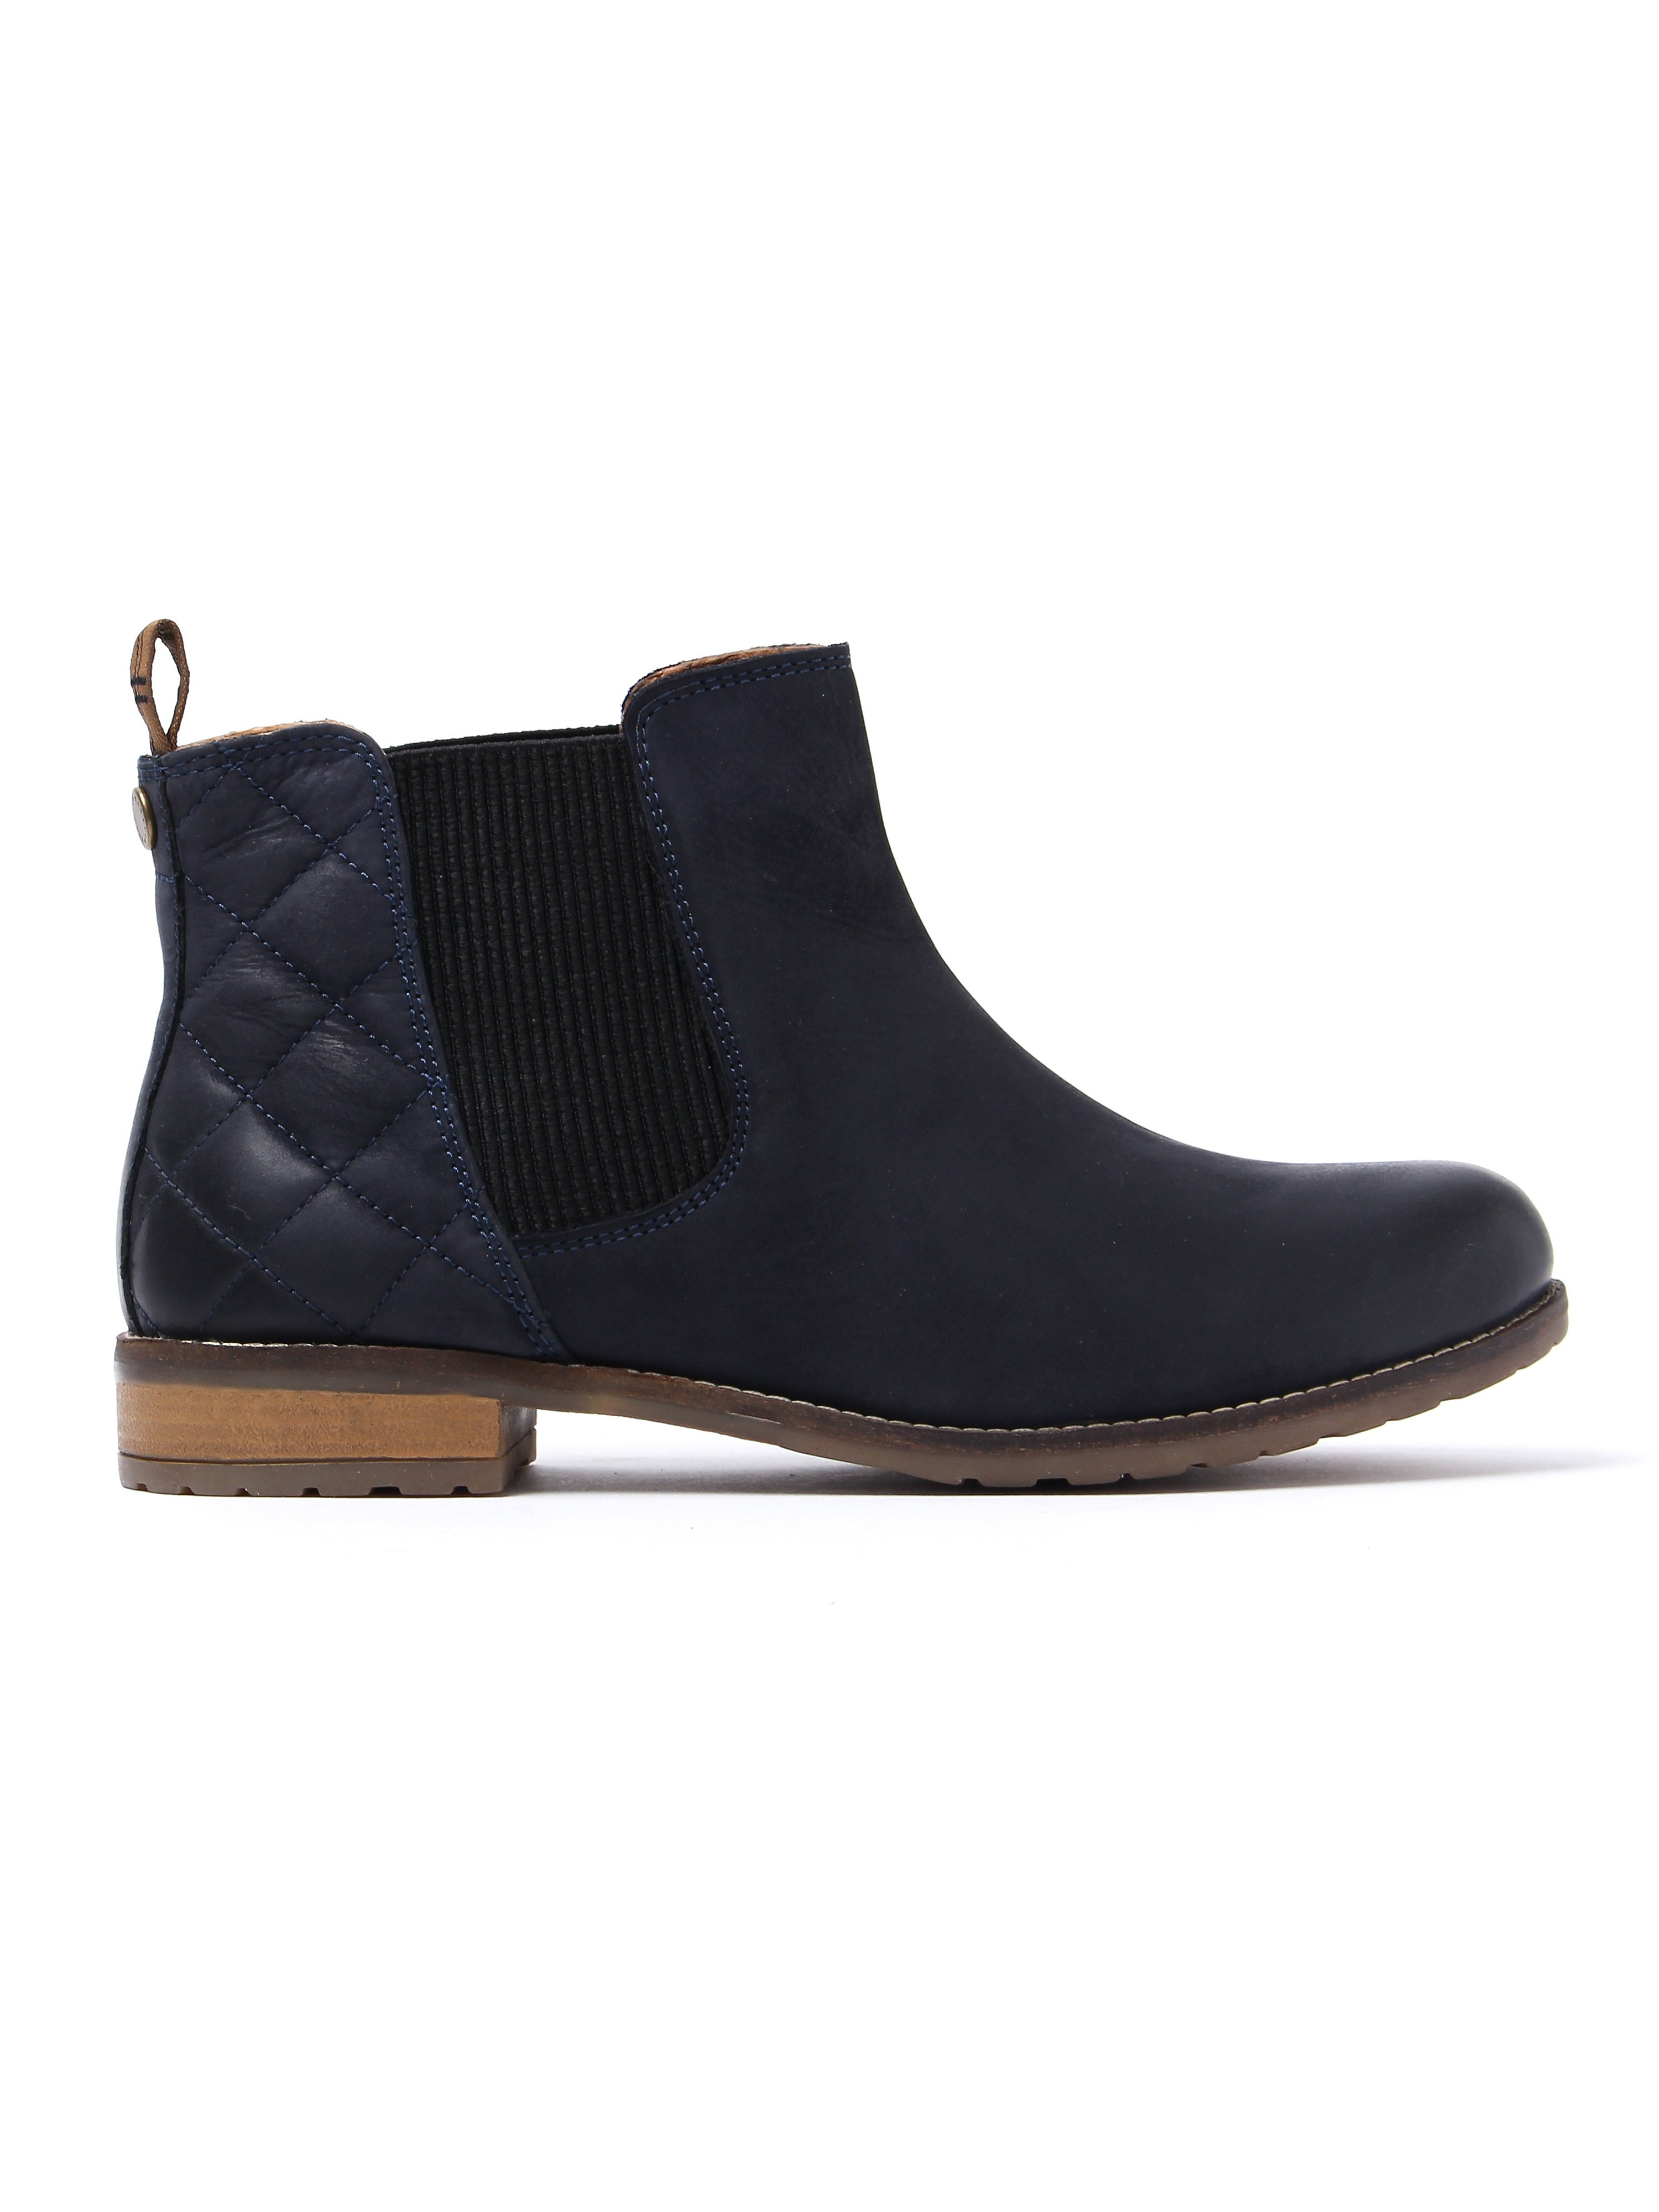 Barbour Women's Abigail Chelsea Boots - Navy Leather